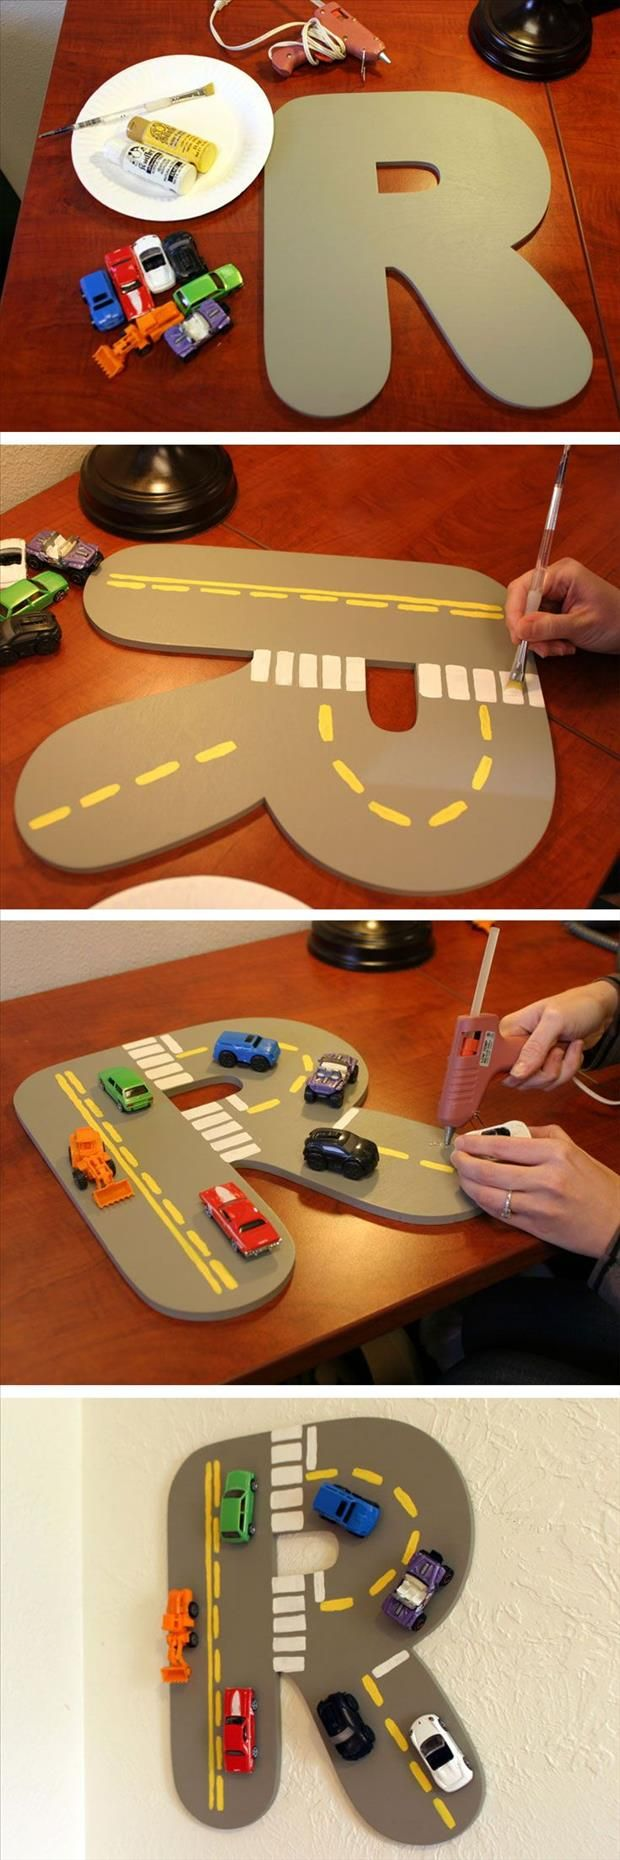 Some Fun Do It Yourself Craft Ideas (32 Pics) | SnarkEcards